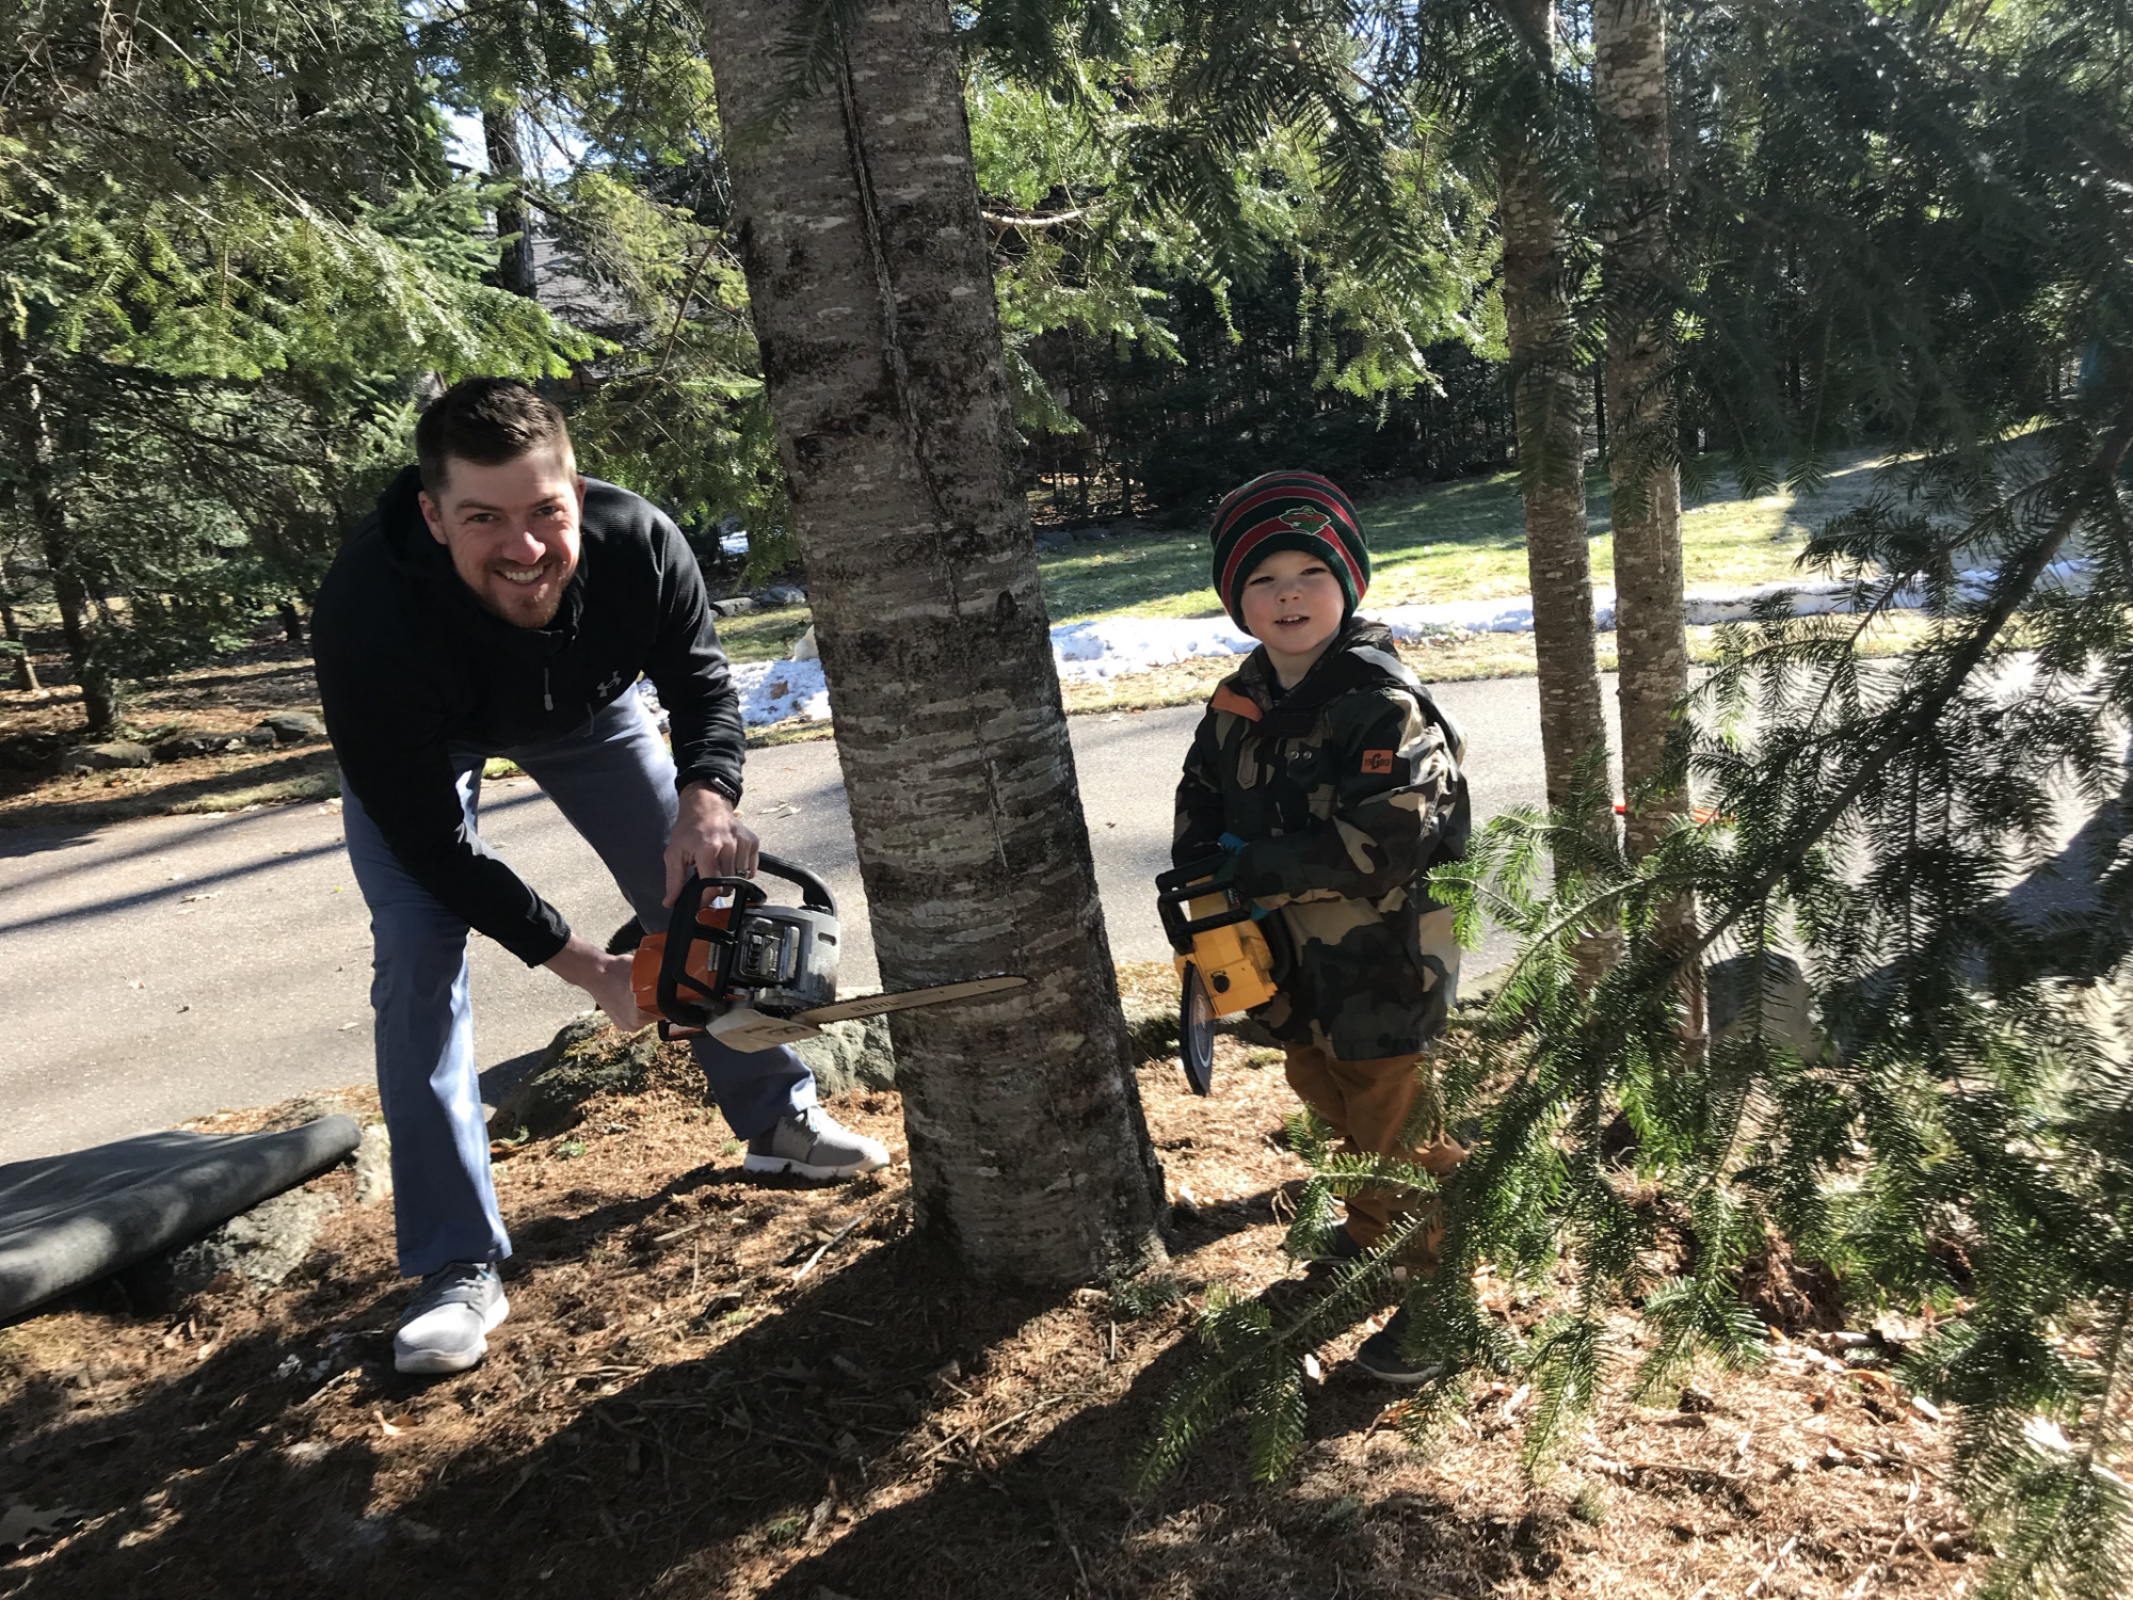 Son-in-love Mike and grandson Colden help trim up trees and haul the down trees from our tough winer of ice and snow!